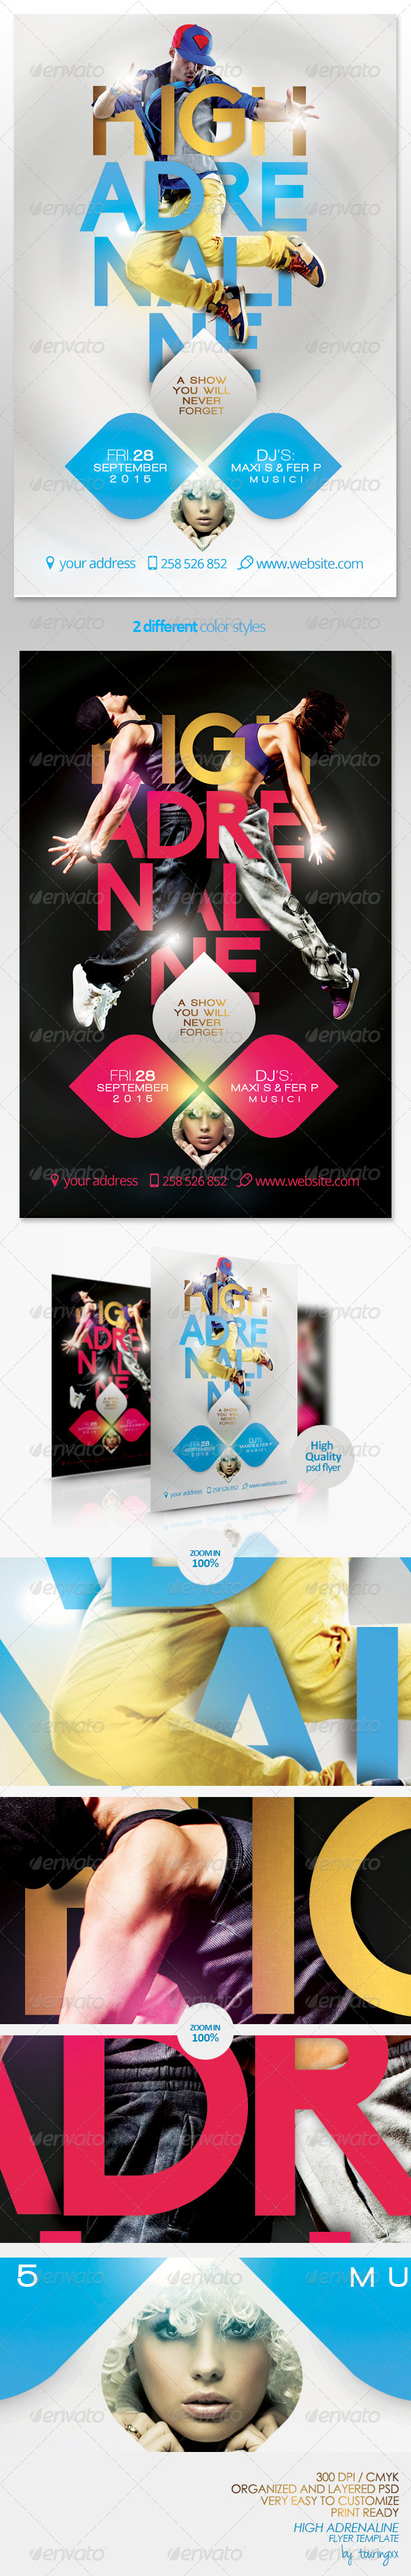 High Adrenaline Flyer Template - Clubs & Parties Events